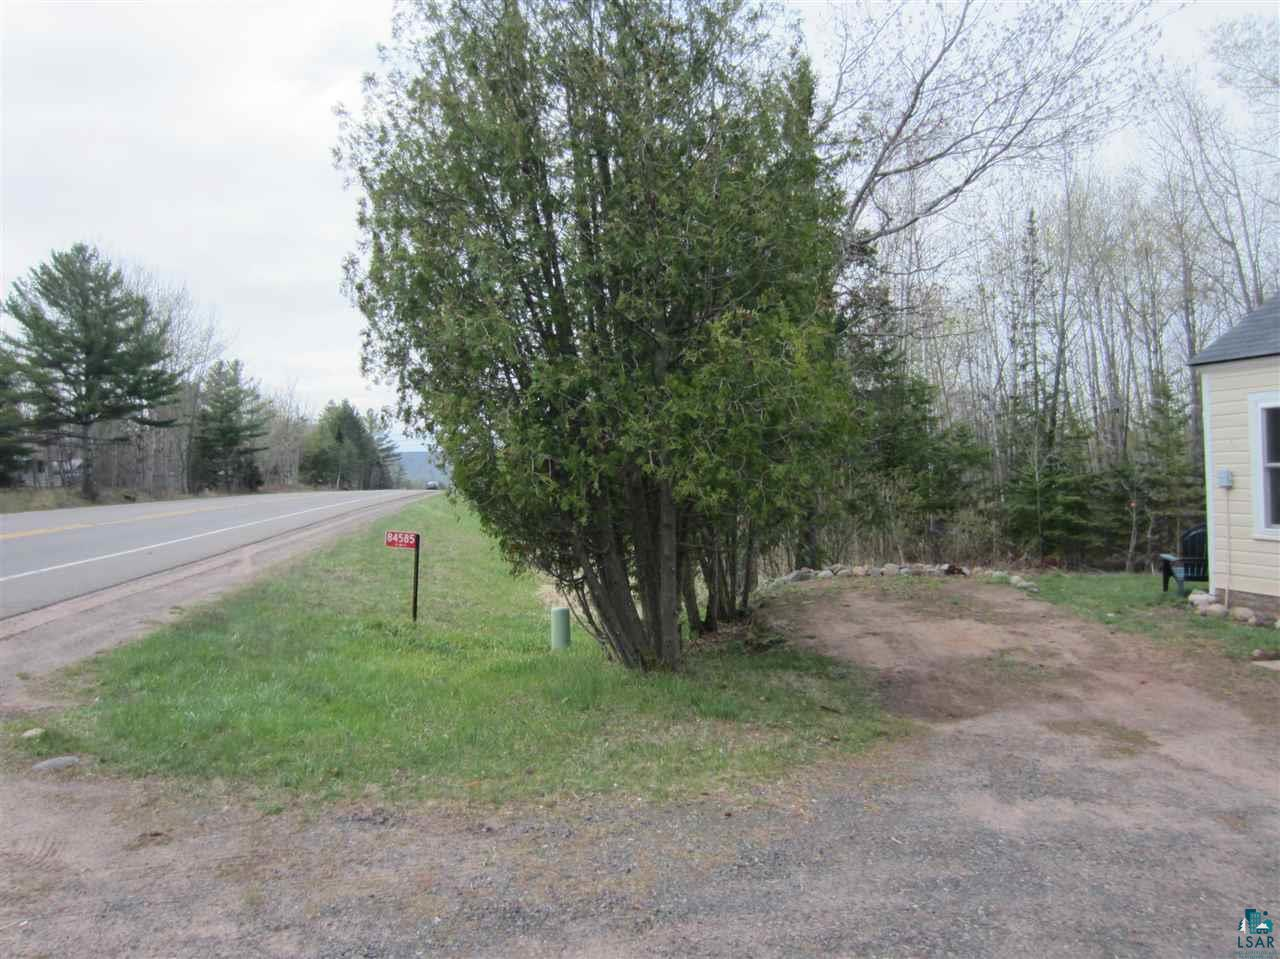 84585 State Highway 13 Lot 1 Csm 1573